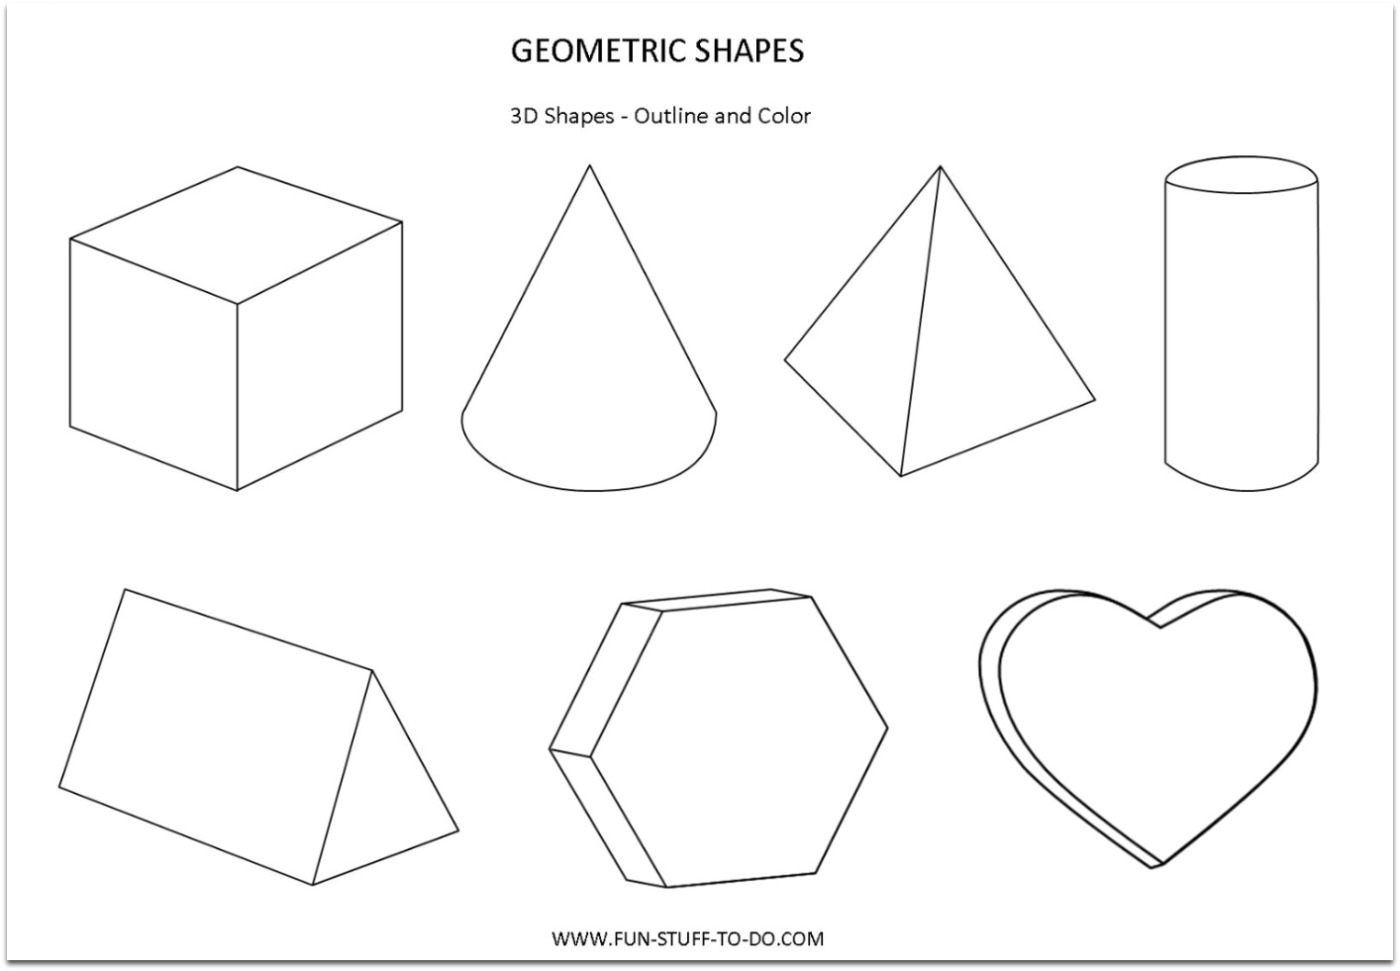 Geometric Shapes Worksheets – 2d and 3d Shapes Worksheets for Kindergarten